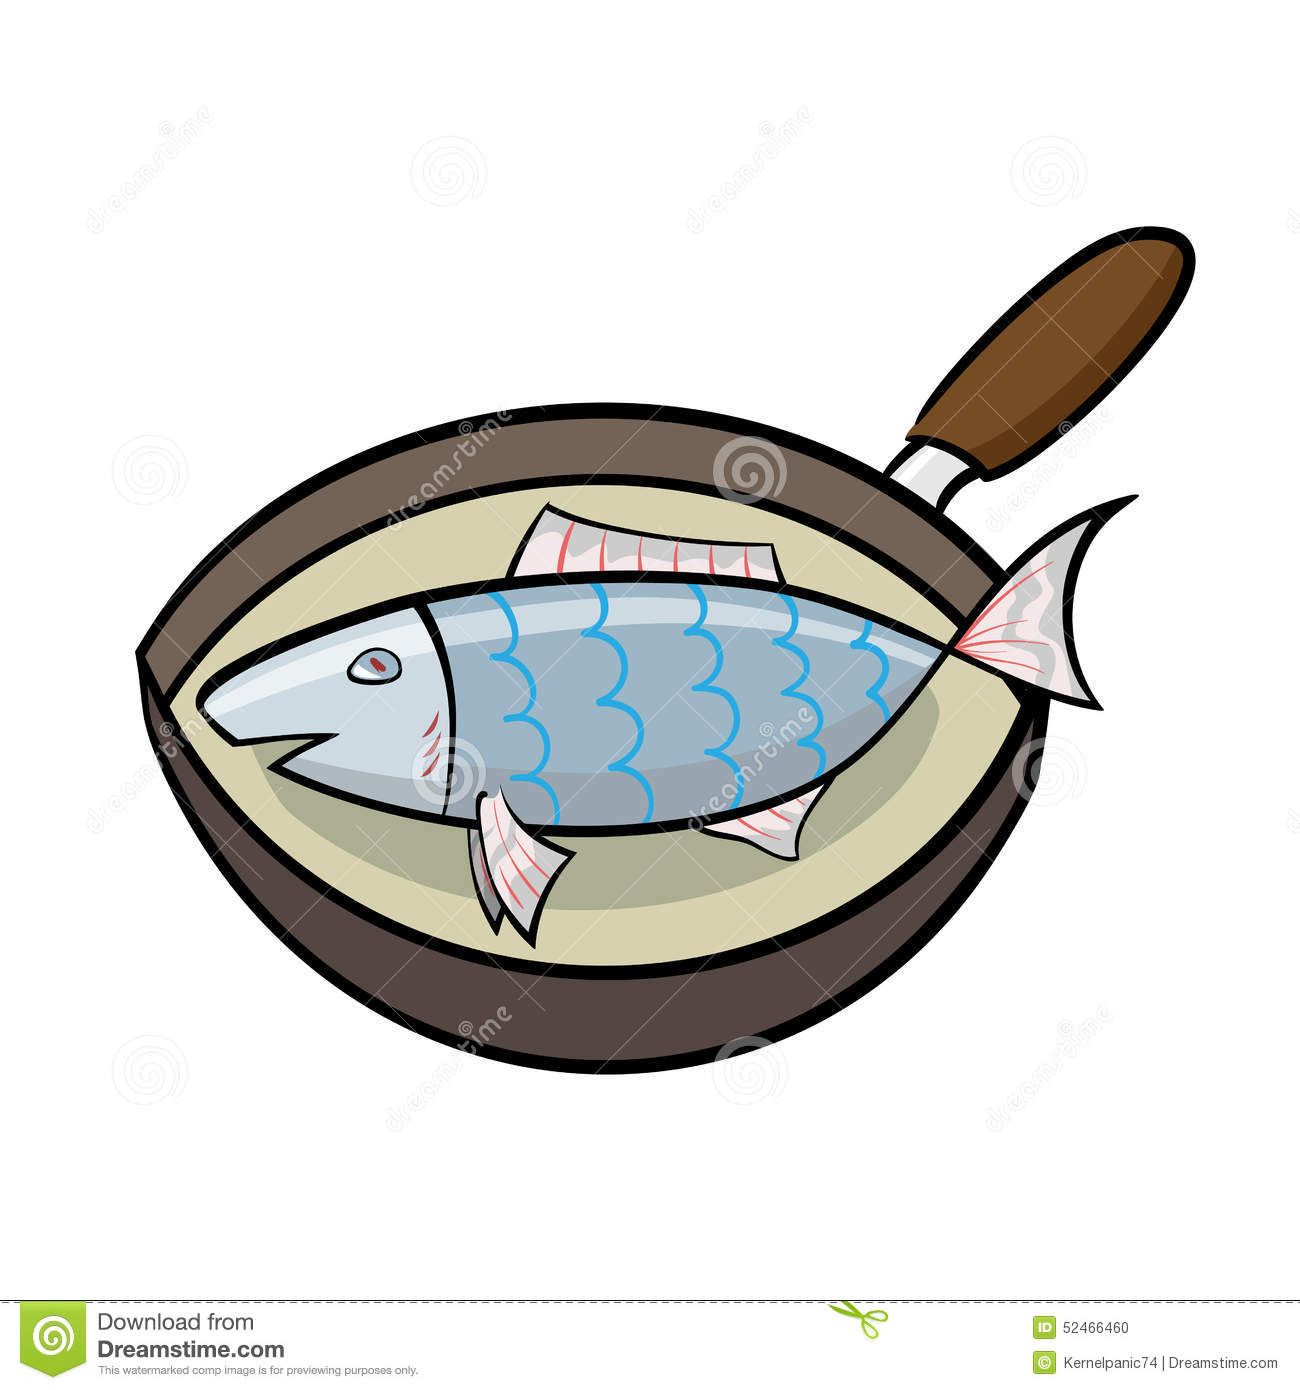 how to cook white fish in a pan